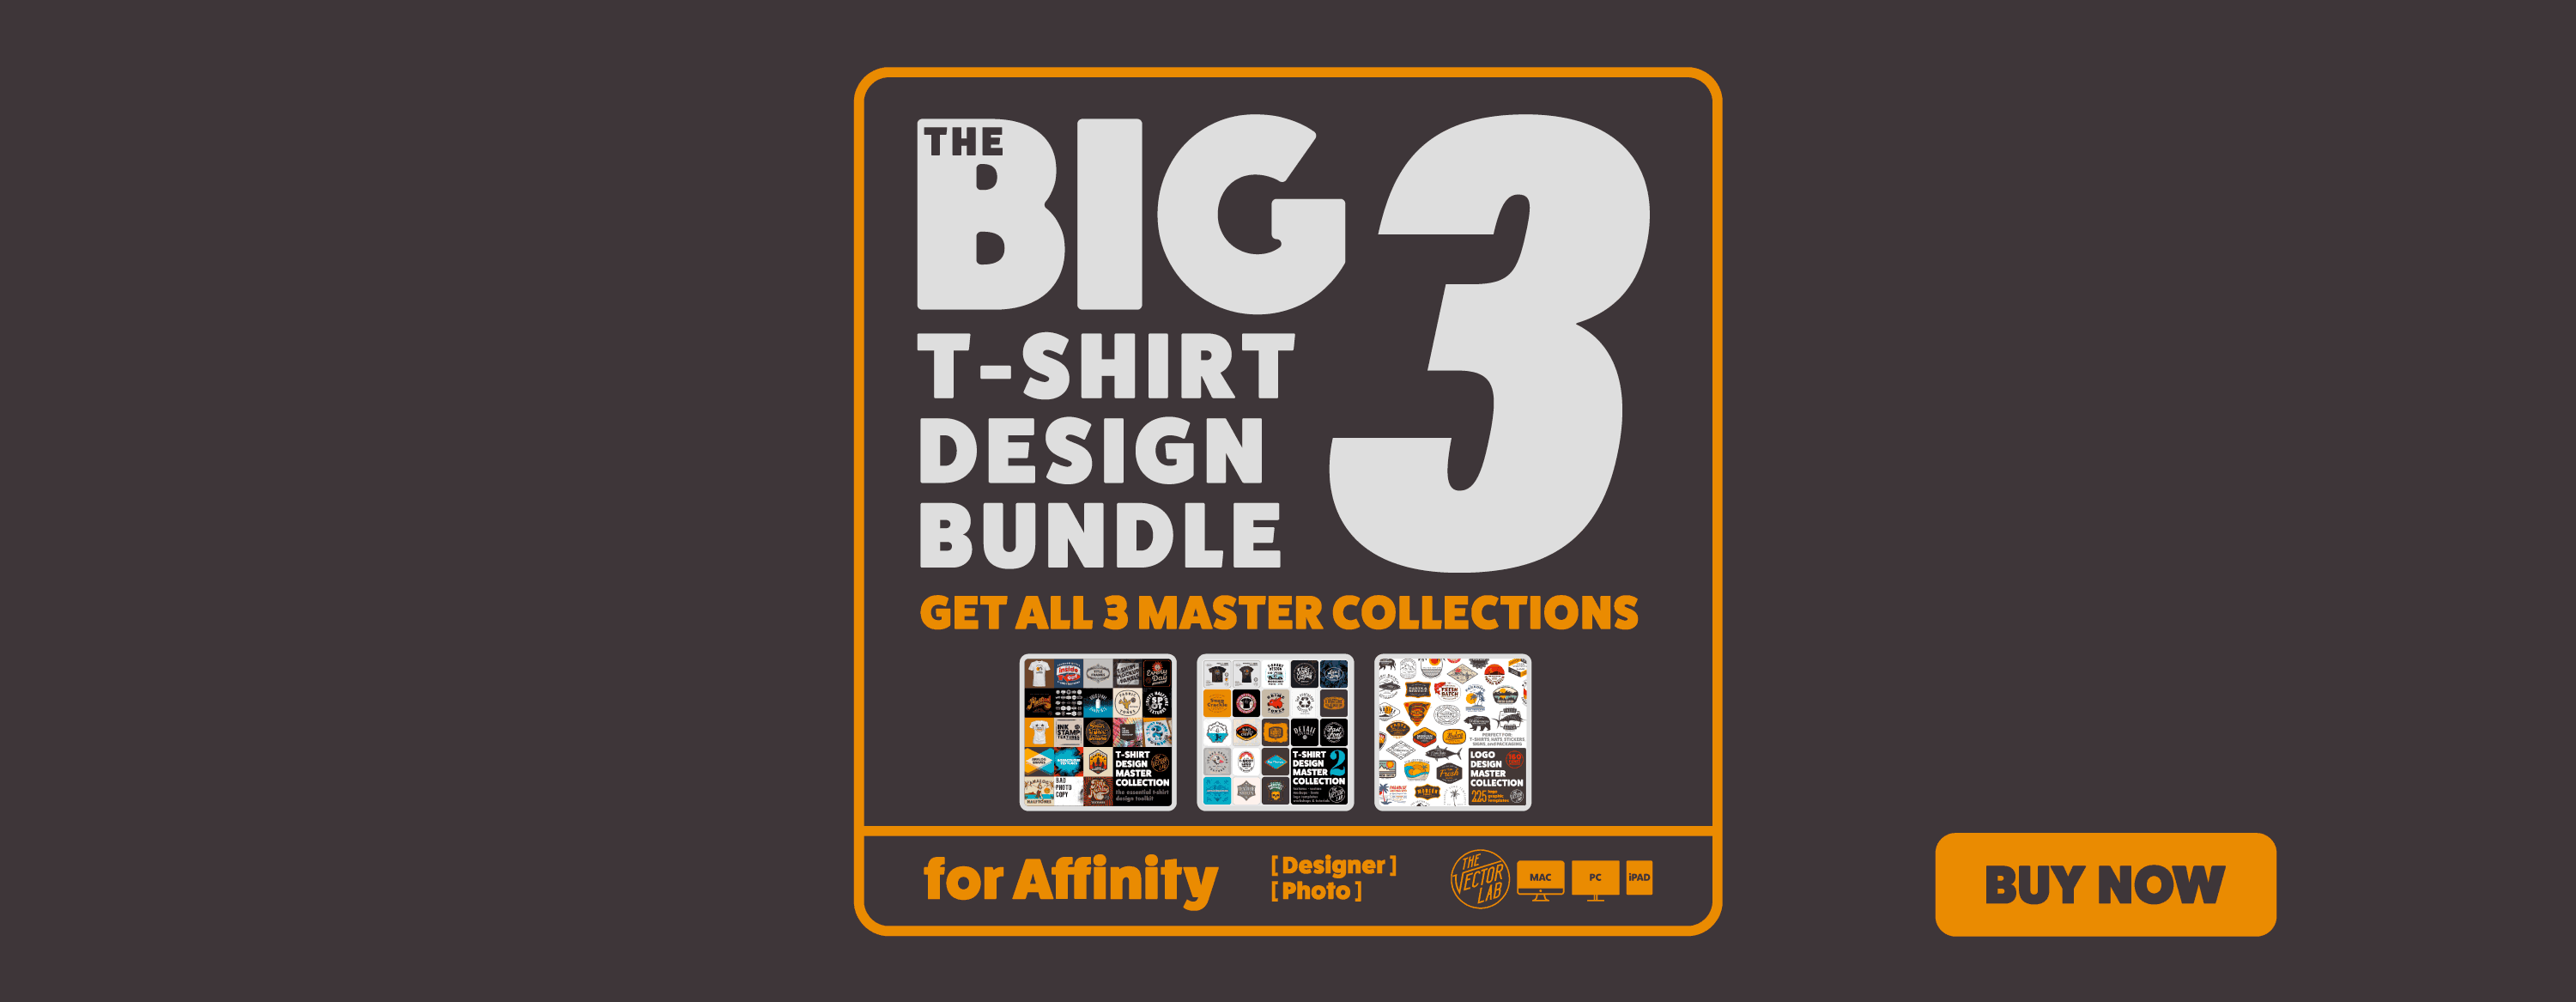 Get all 3 Master Collections: The Big 3 Bundle for Affinity